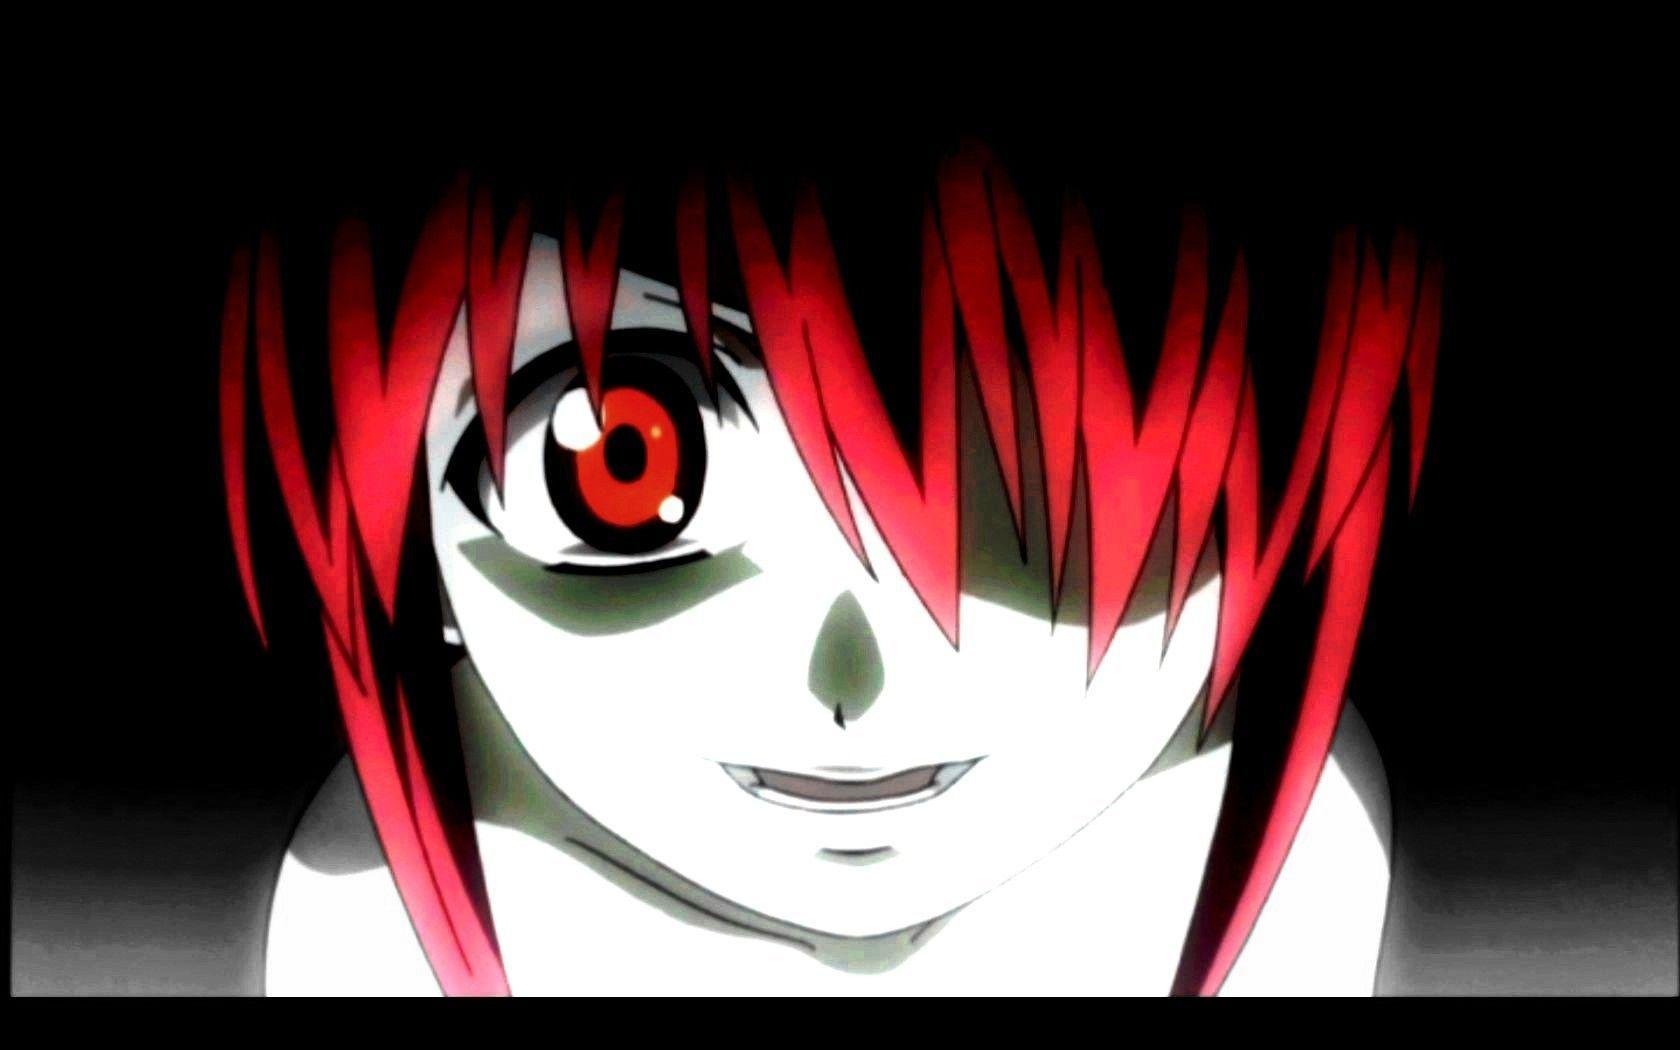 Elfen lied wallpapers wallpaper cave for Imagenes de anime gore